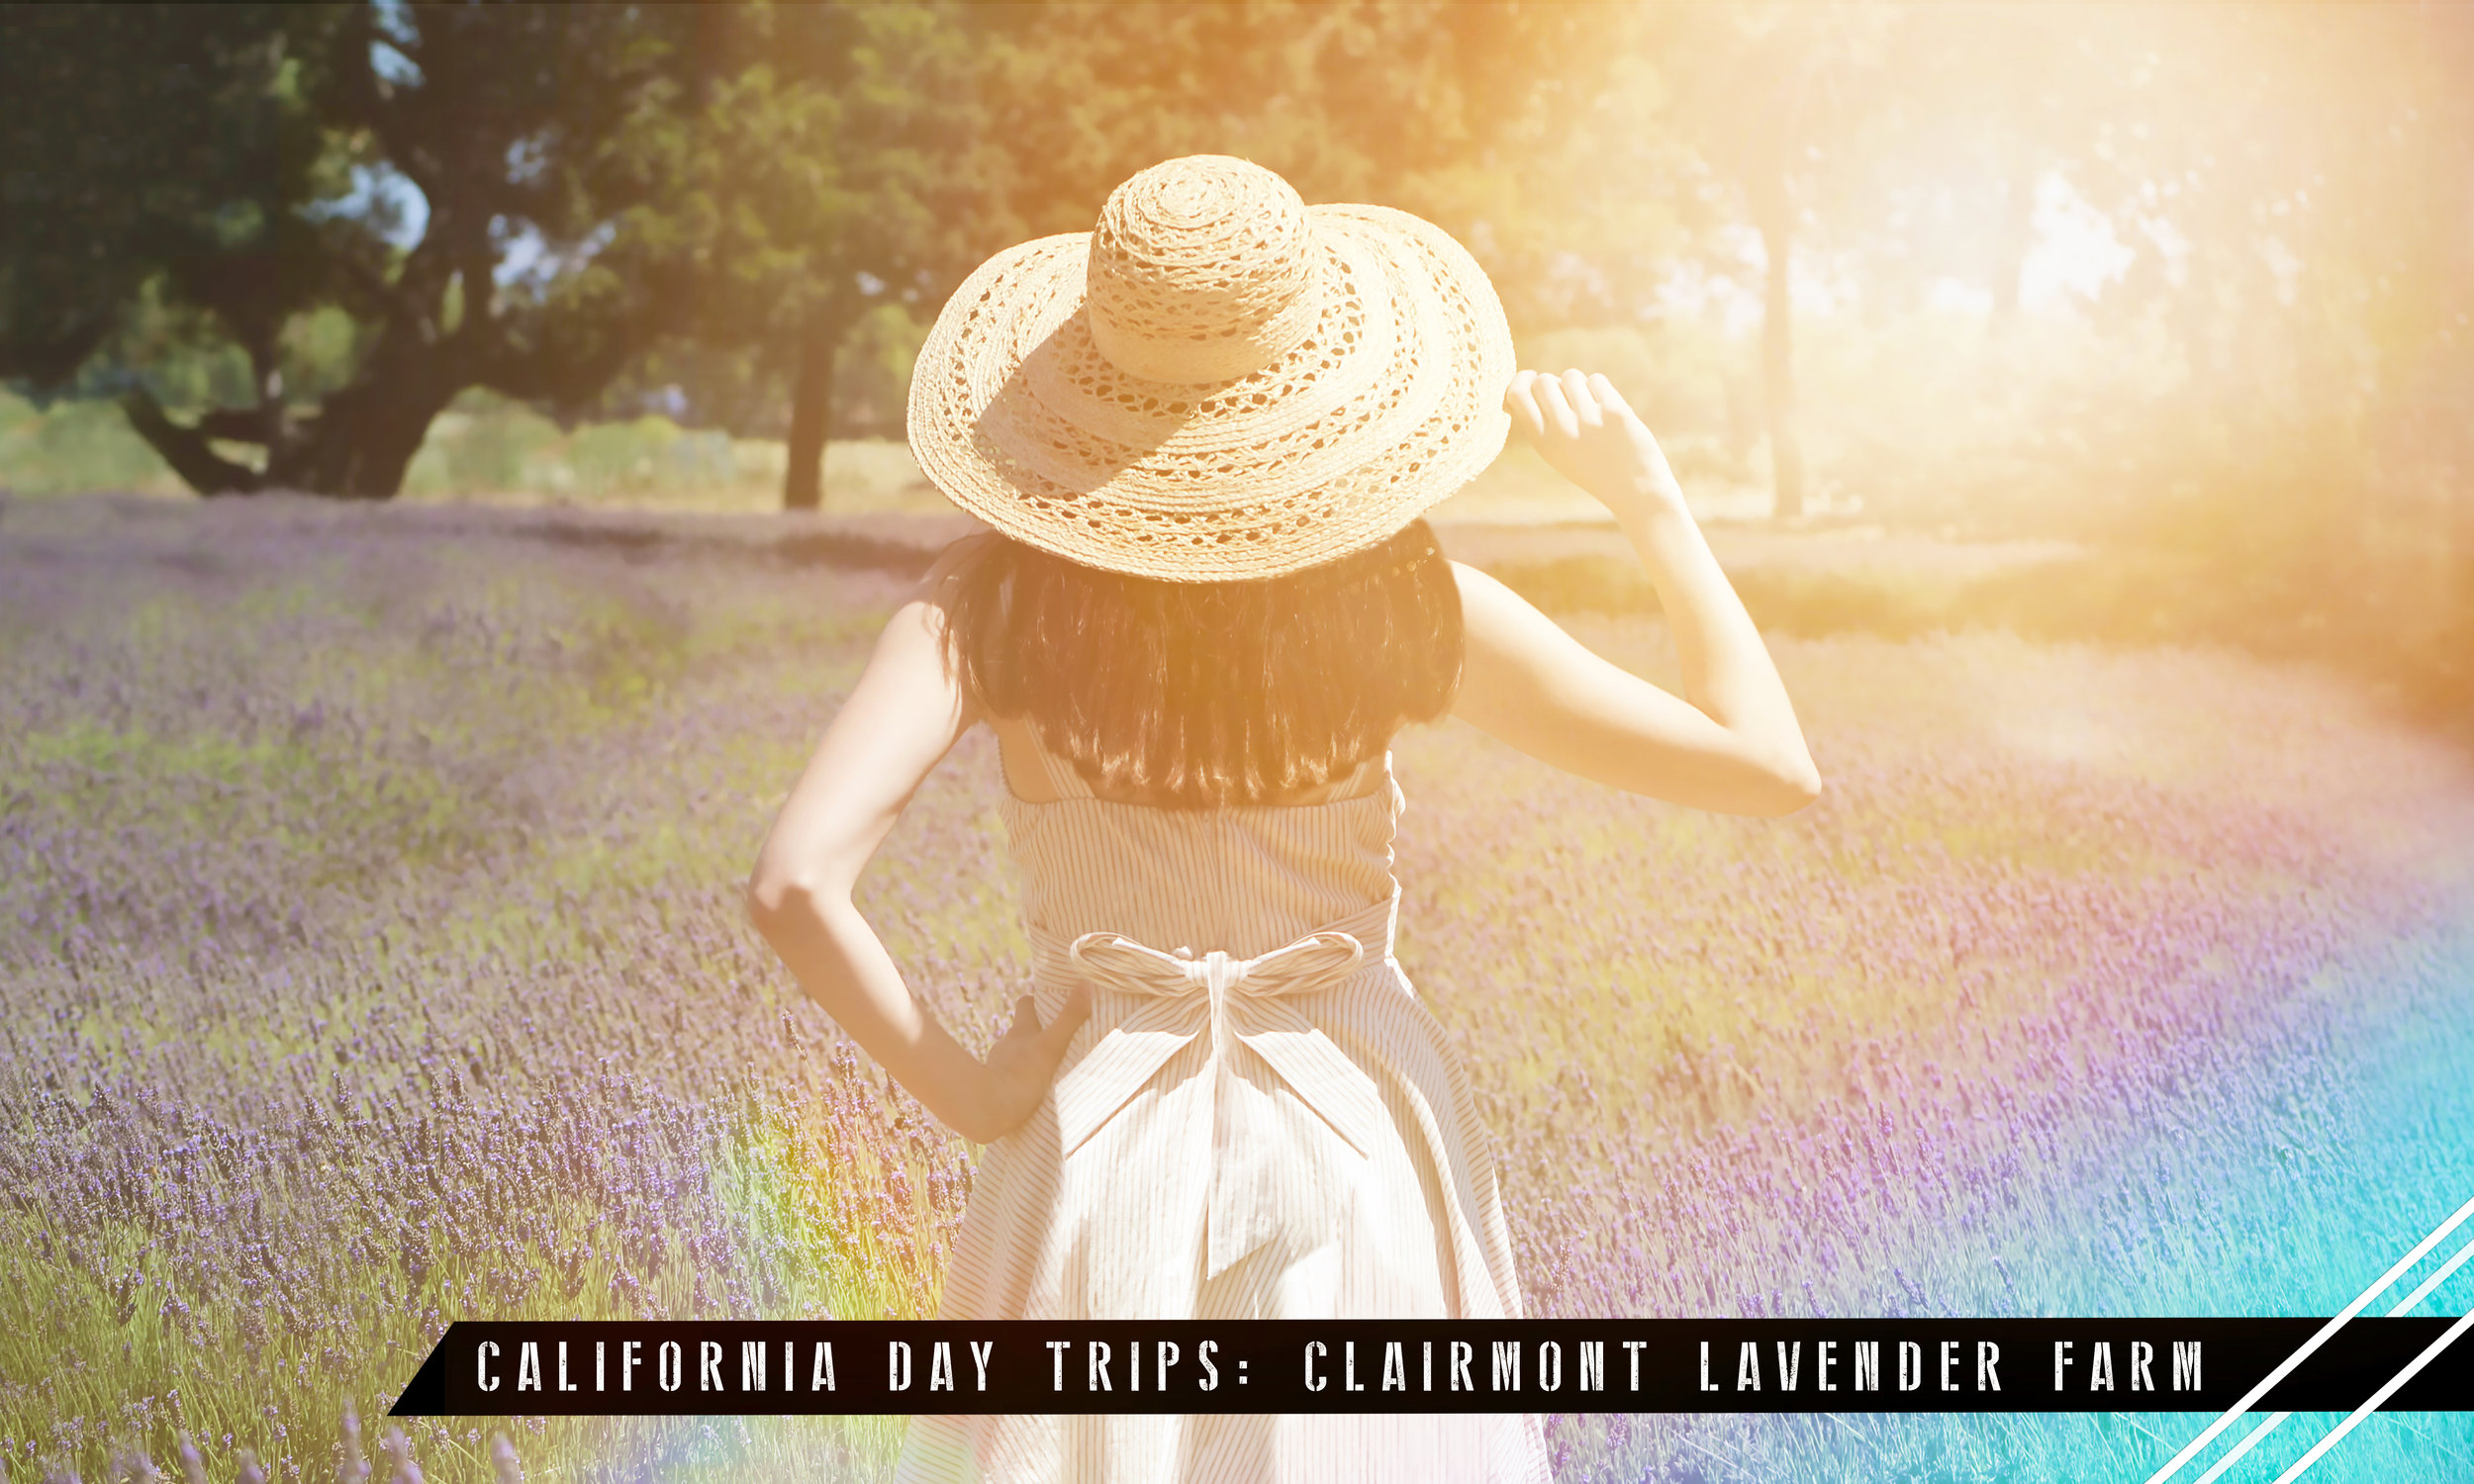 Featured Photo:  Located in the Santa Ynez Valley in Los Olivos, Clairmont Farms is home to acres of lavender fields and organic products.  Model:   Jacqueline Sherrard   Photographer:   J.W. CUDD